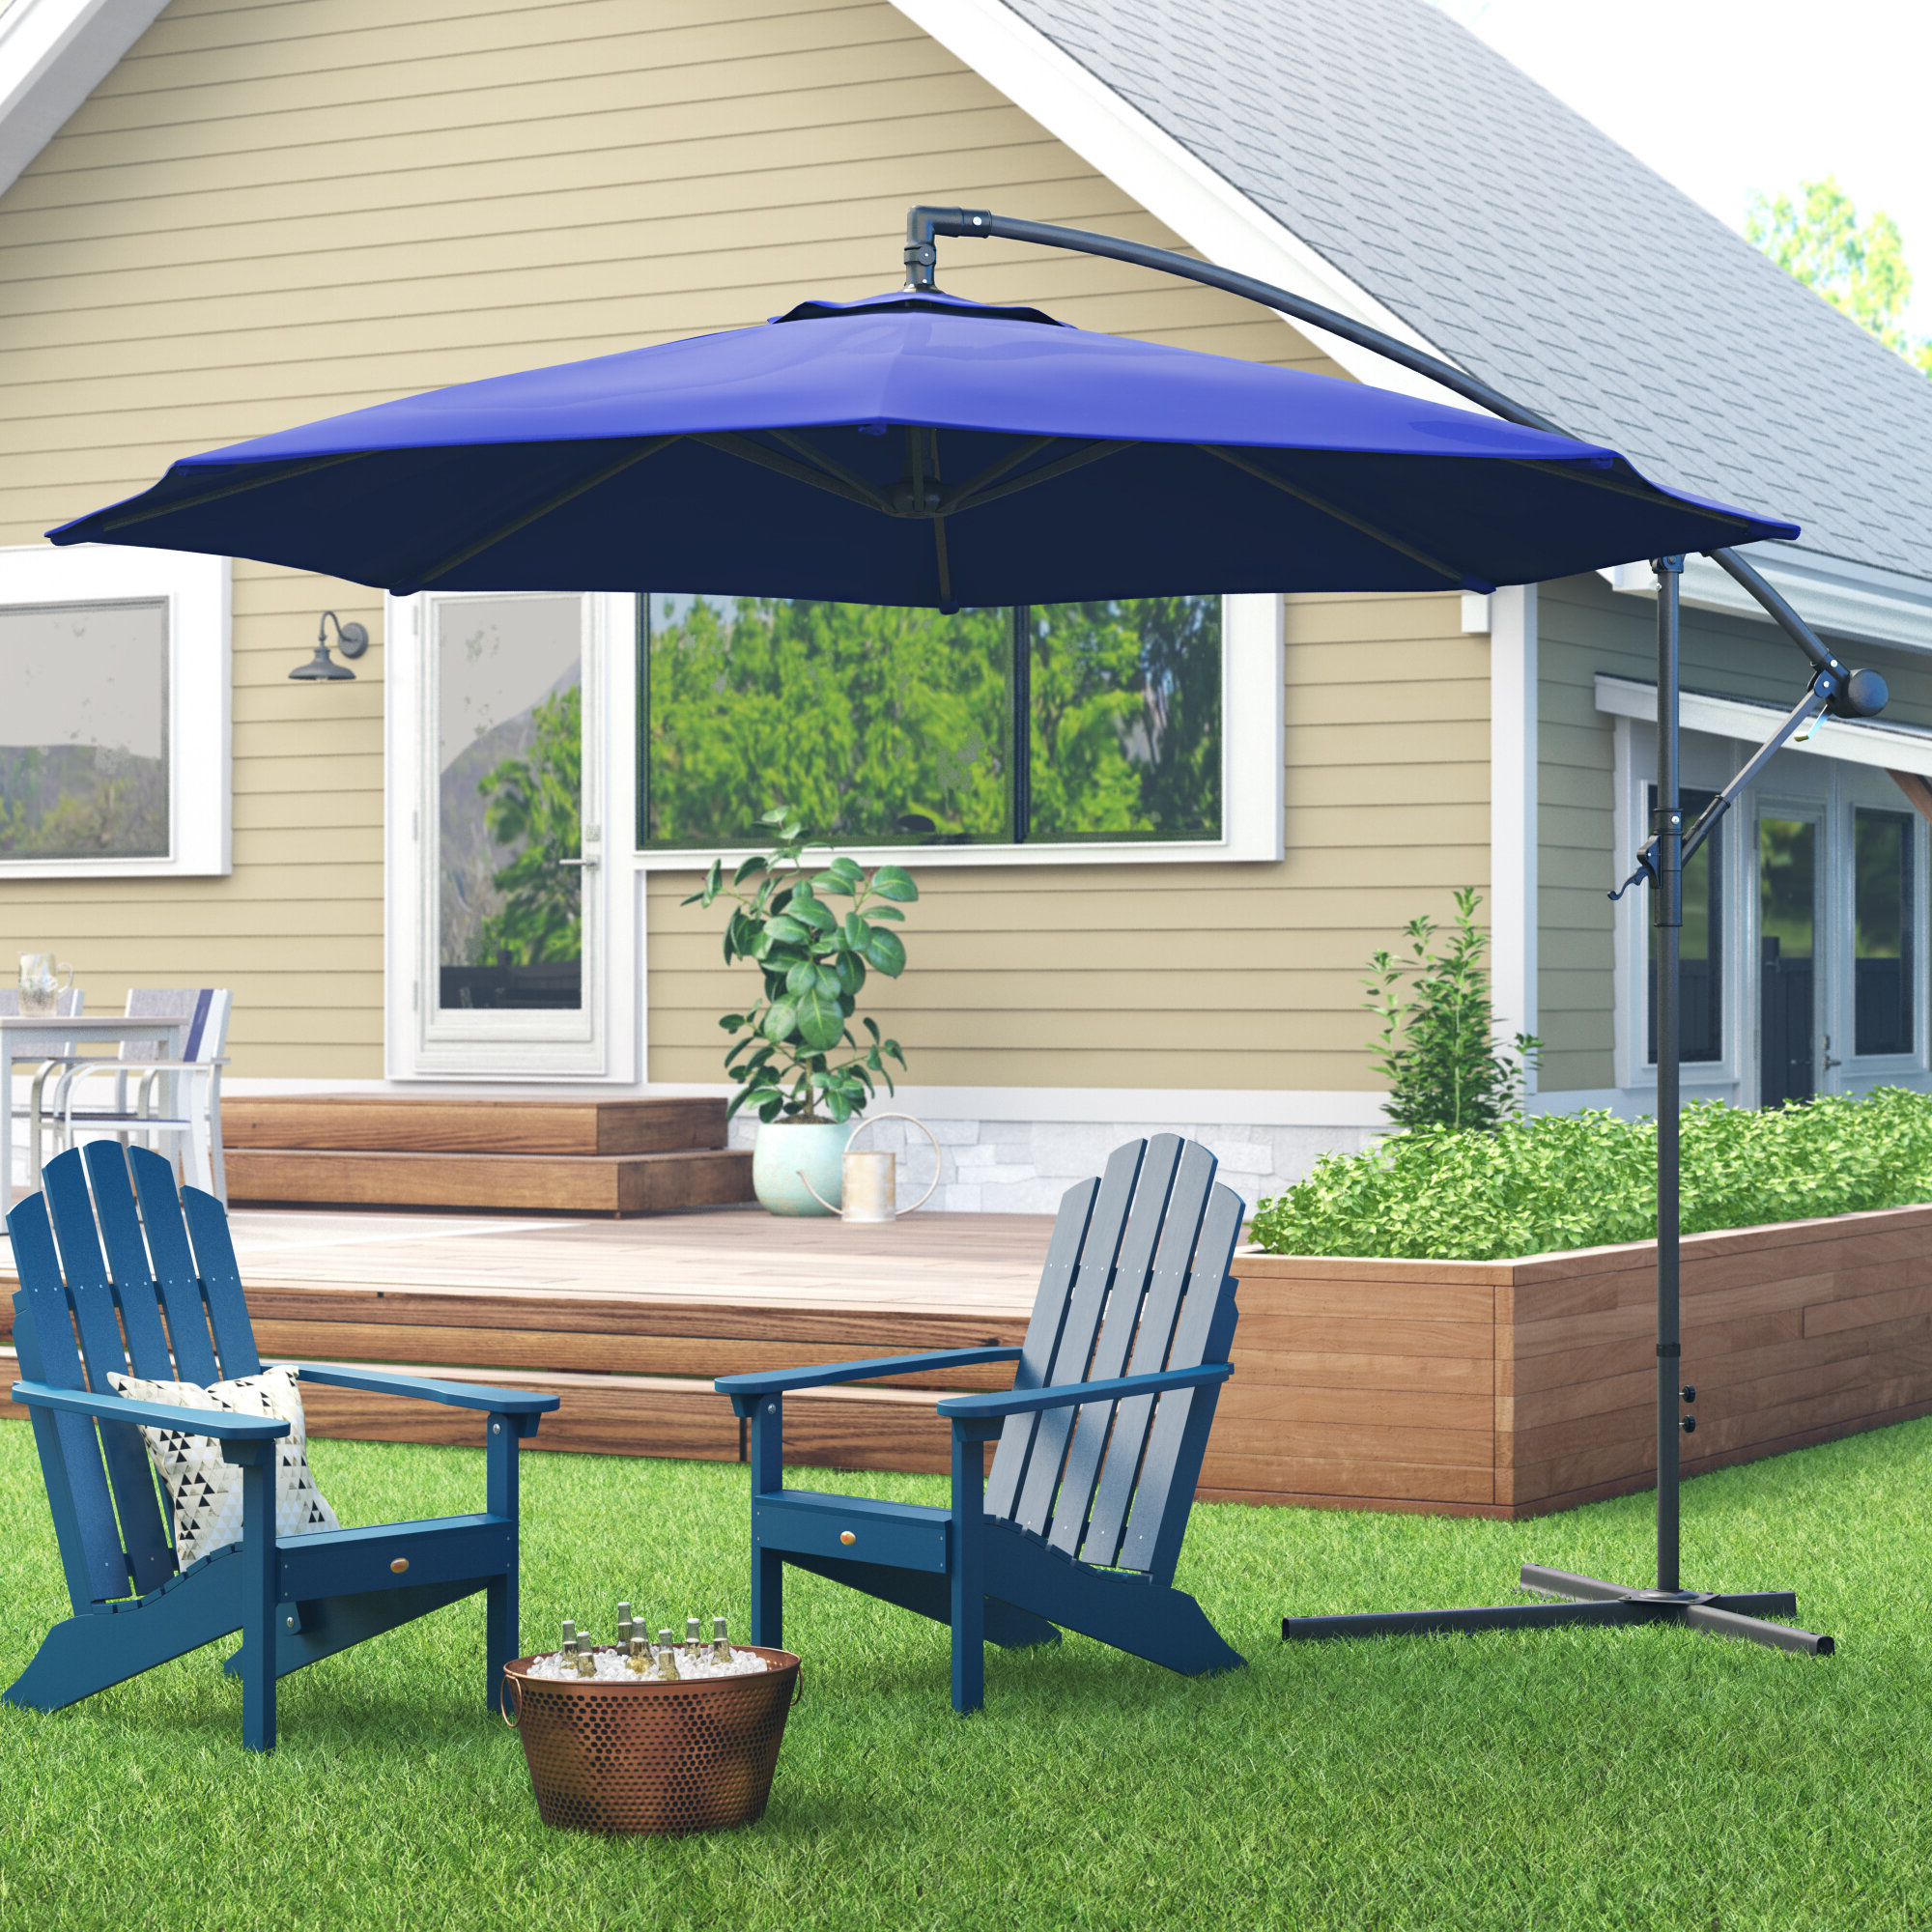 Most Popular Bostic Cantilever Umbrellas Within Trotman 10' Cantilever Umbrella (View 10 of 20)